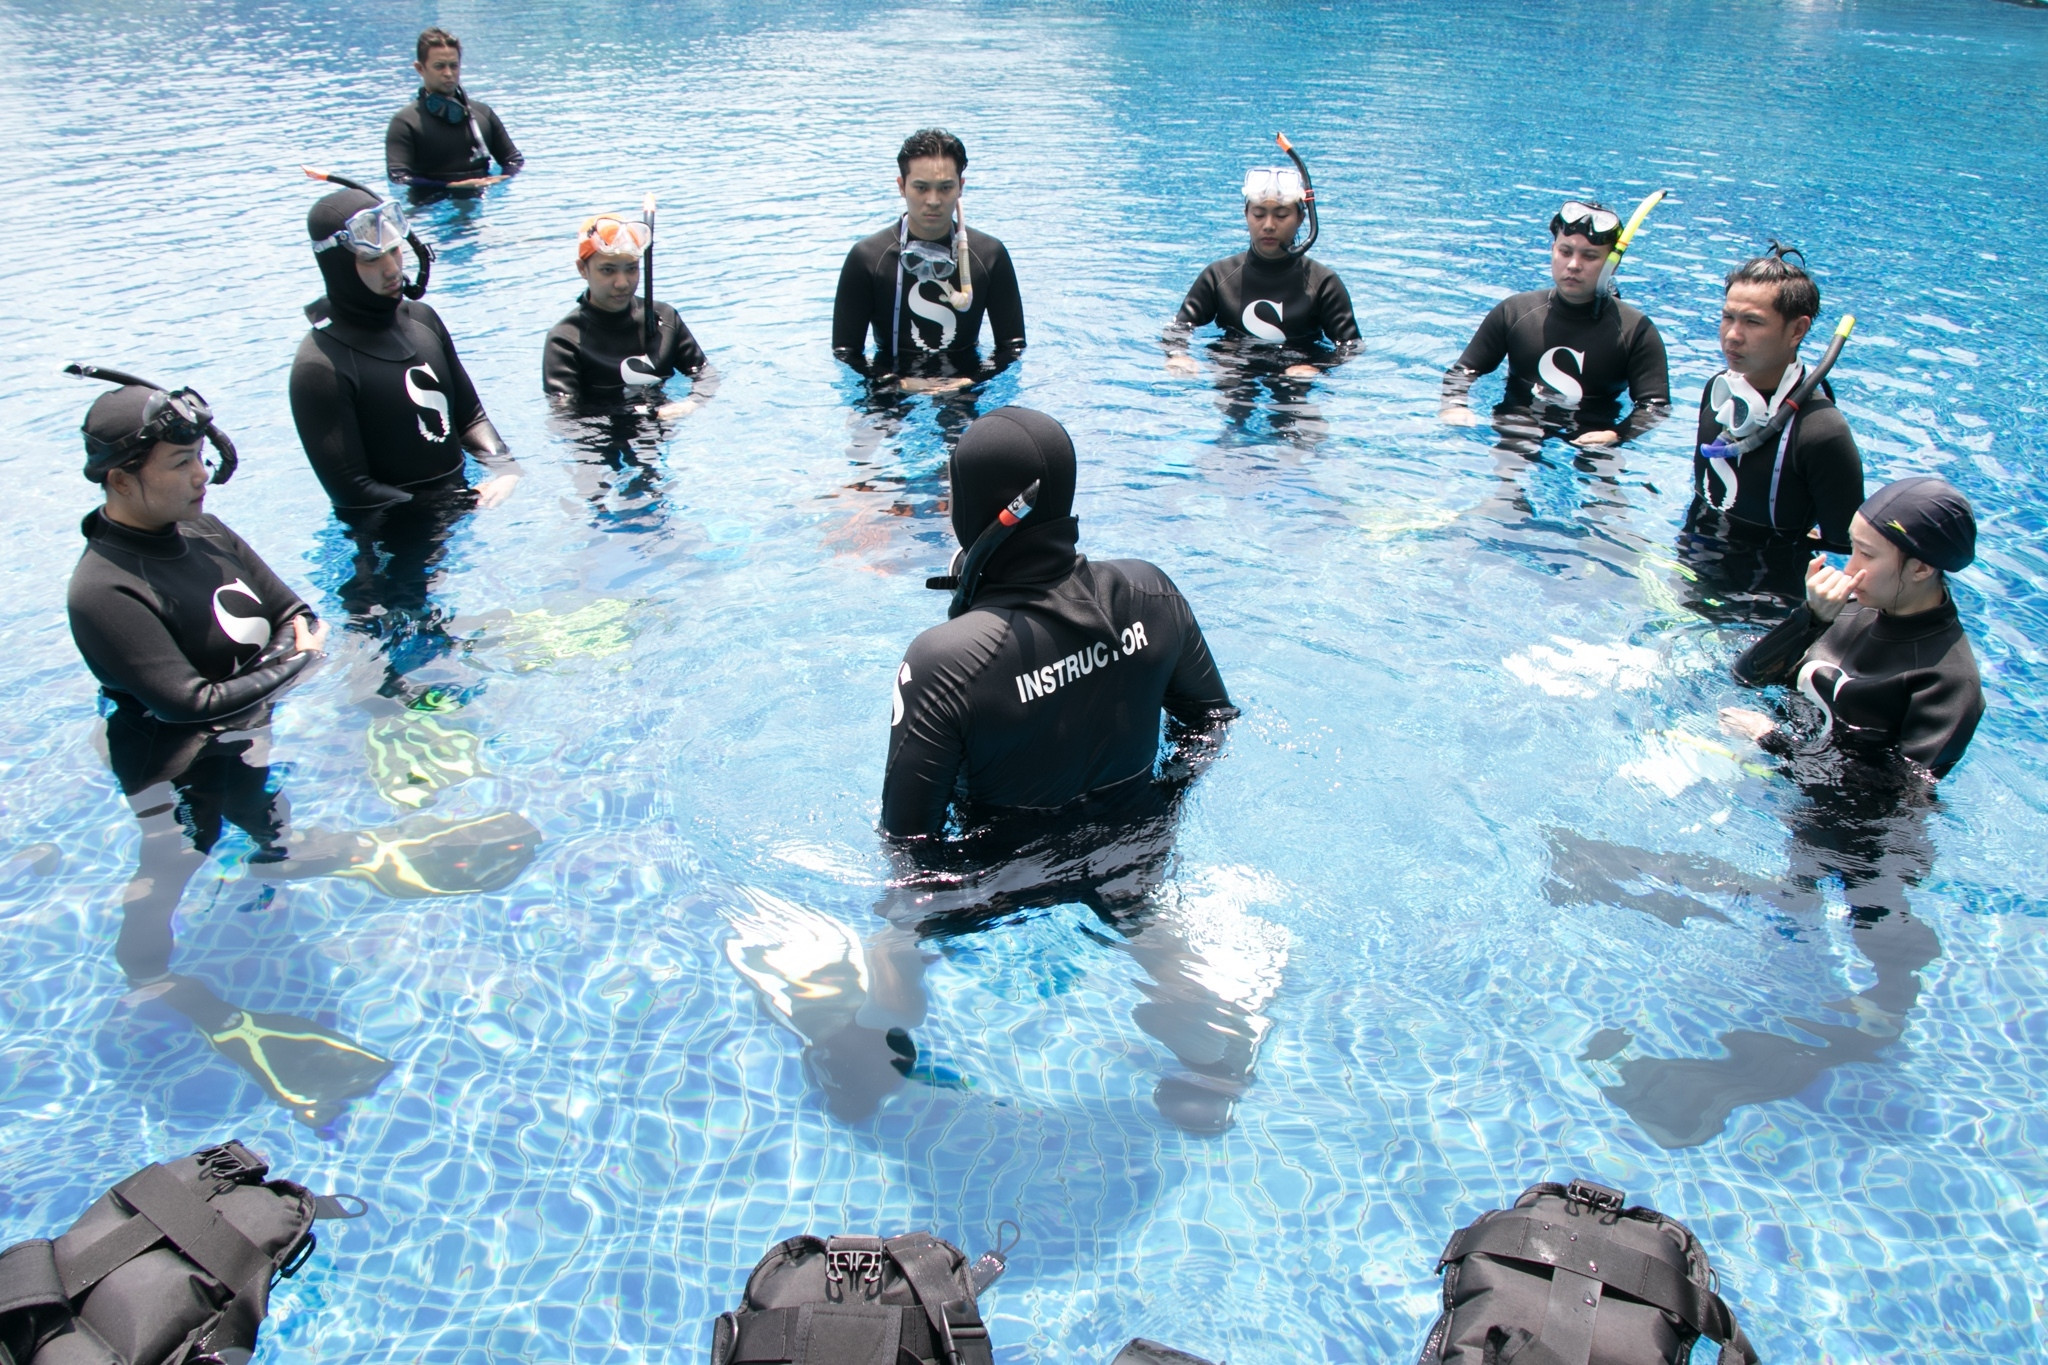 Open Water Diver (Adult) SM-A01 A01/1